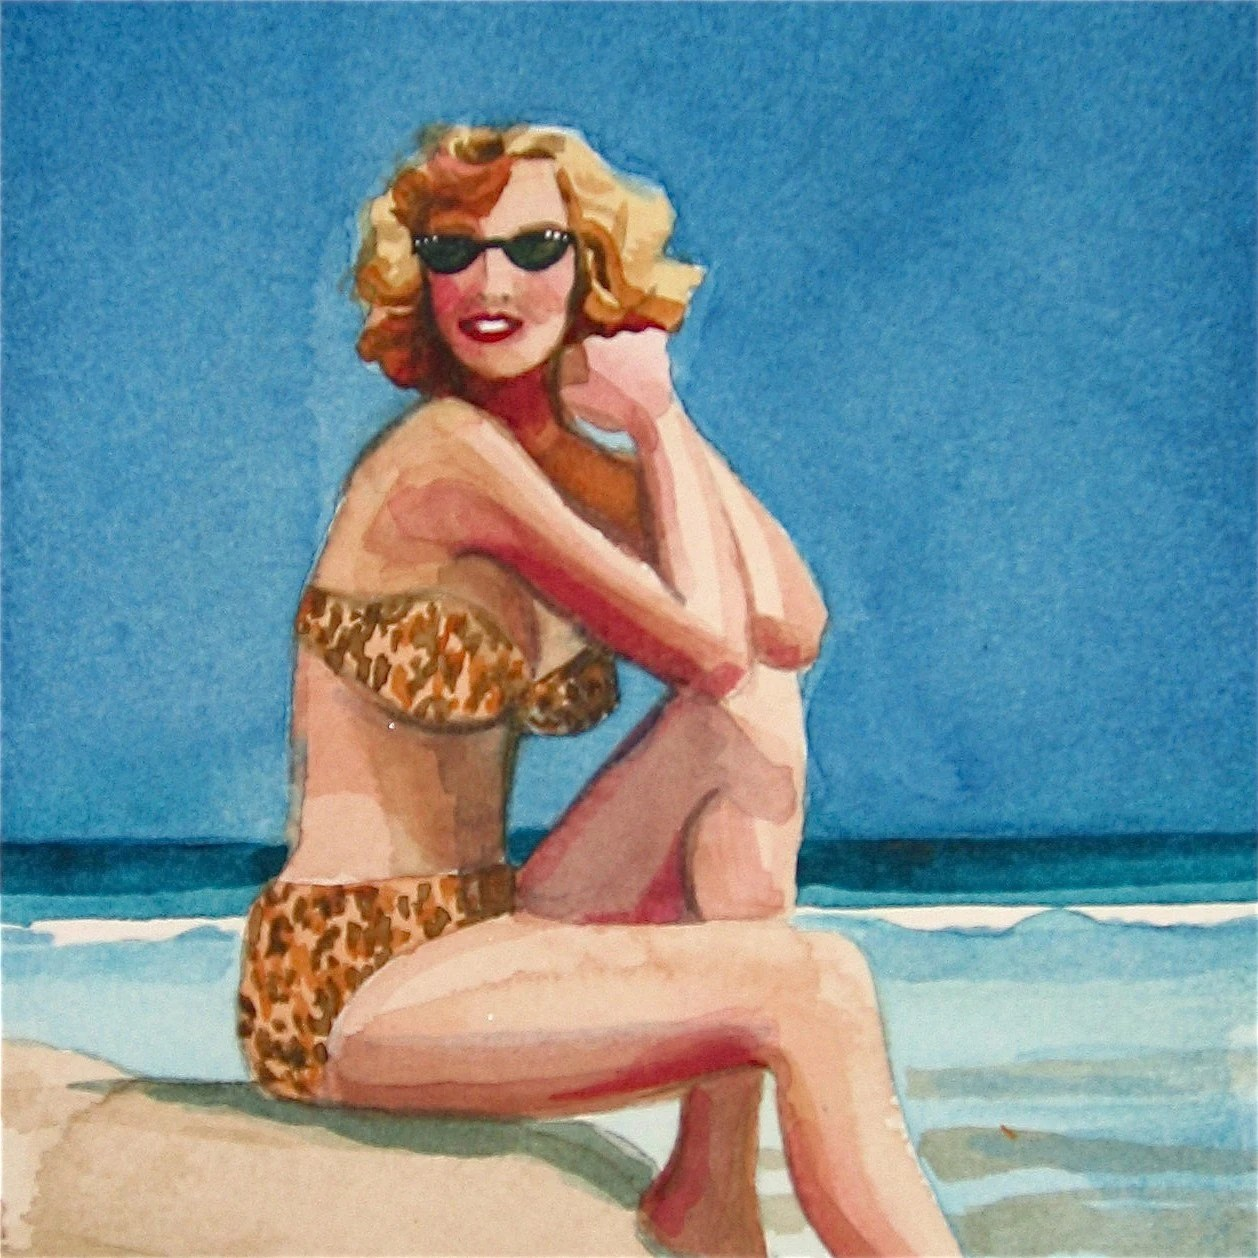 Bathing Beauty Jane - watercolor portrait by Gretchen Kelly - gretchenkellystudio